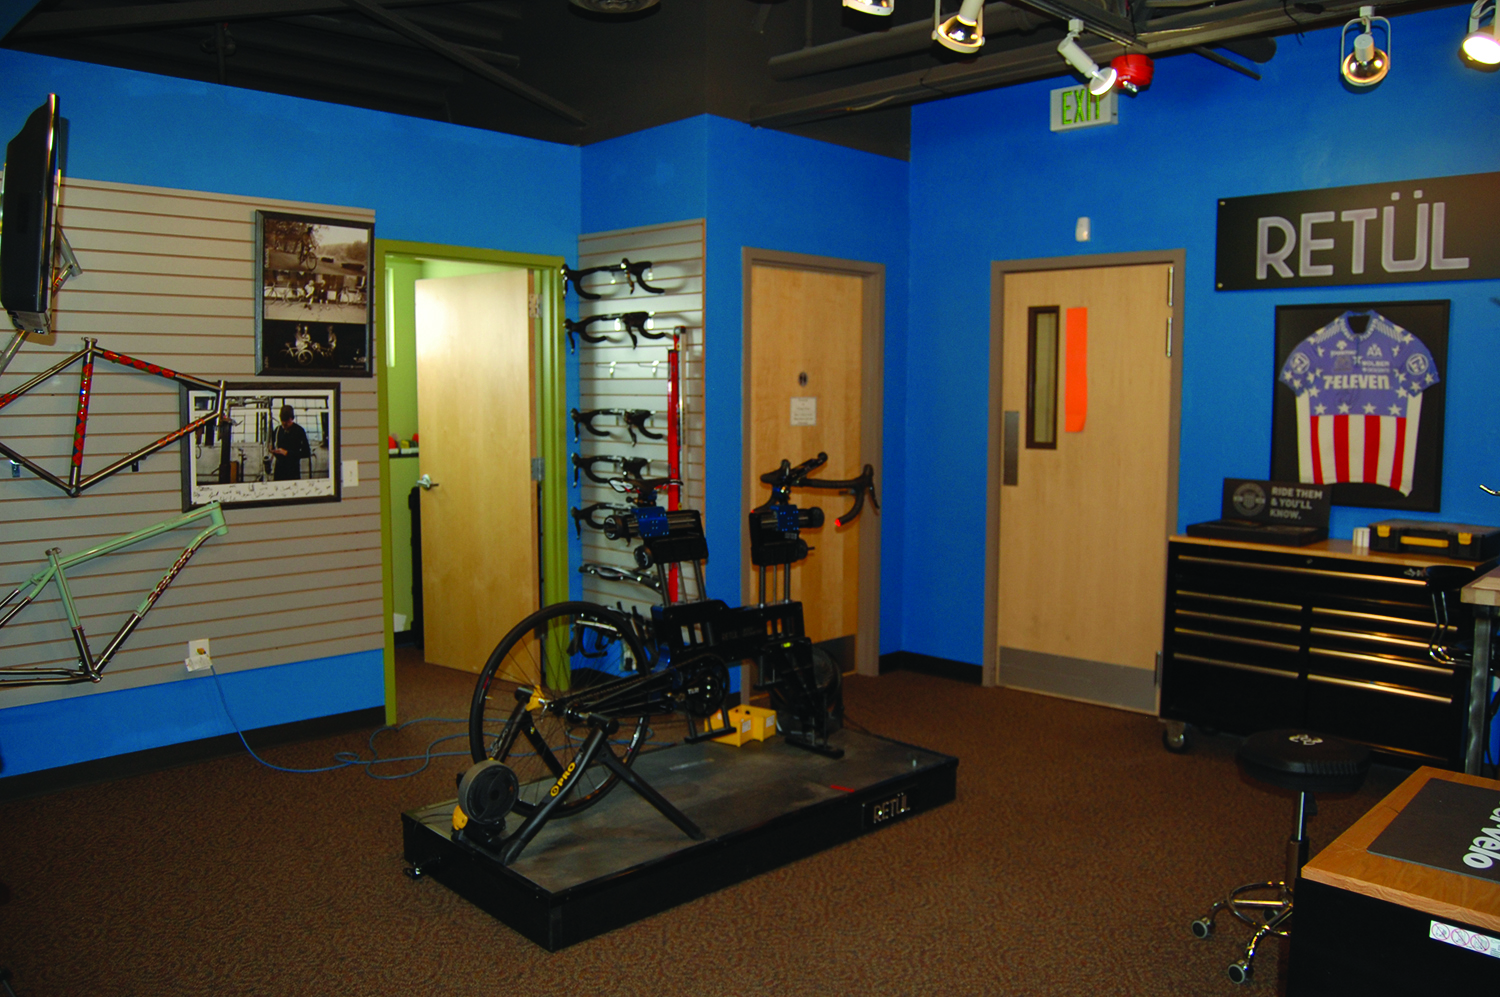 Private Fitting - Custom bike fits are conducted in mezzanine-level bays for peace and quiet and—yes—privacy.